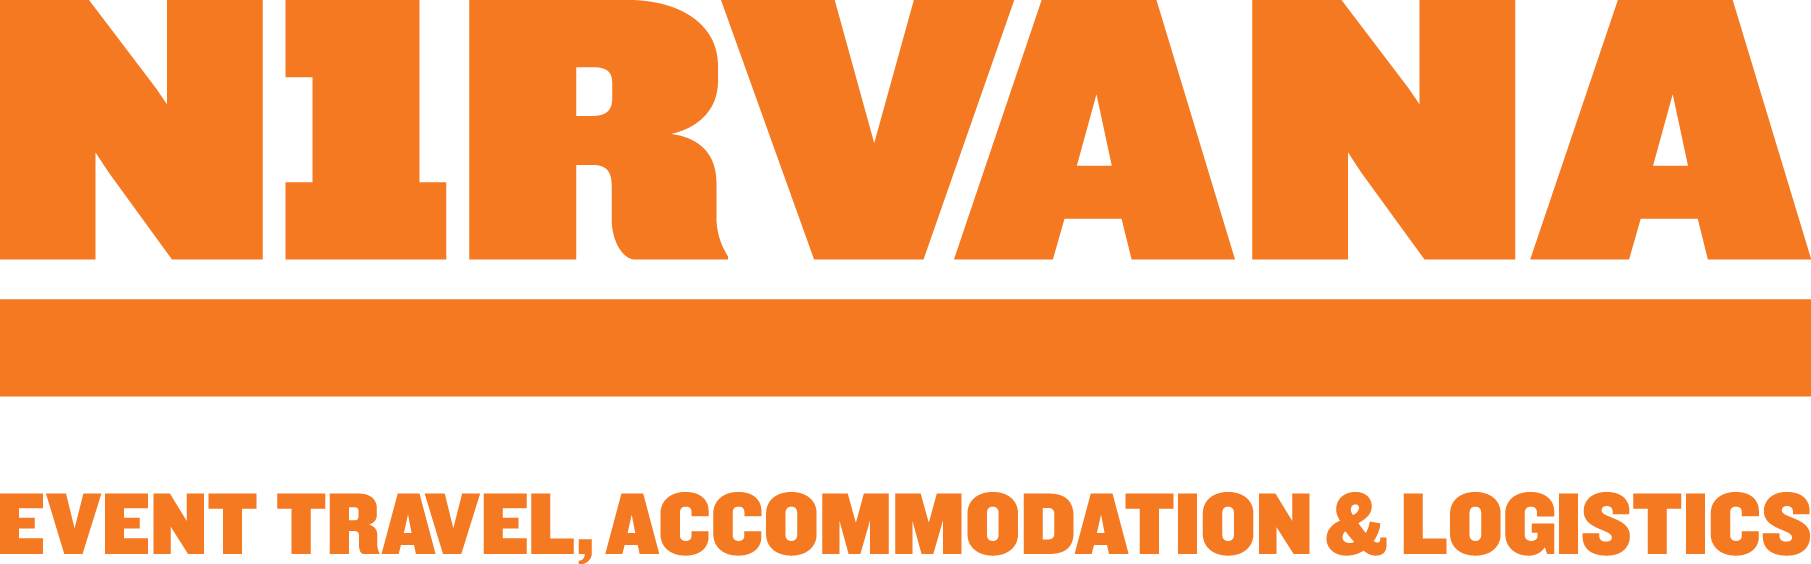 Official Nirvana Event Travel, Accommodation and Logistics partner logo